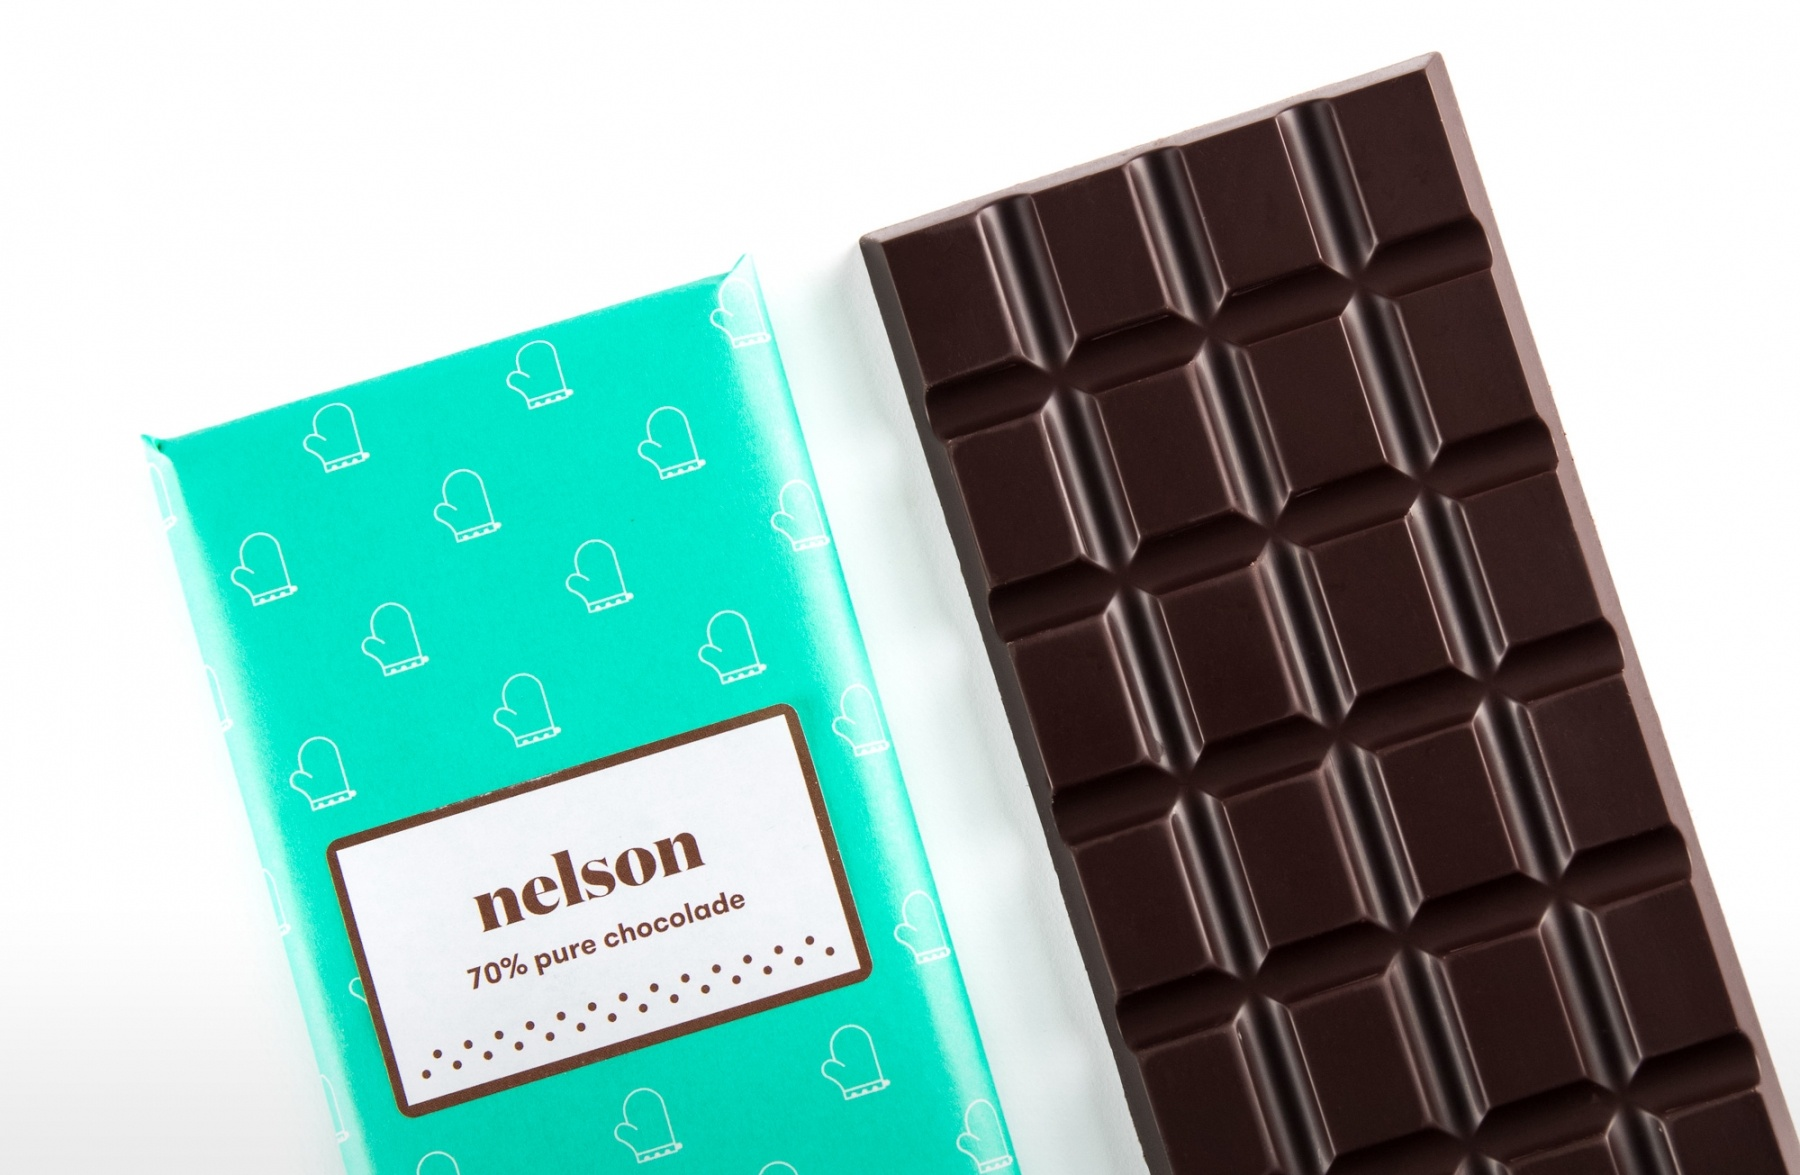 Nelson - 70 Pure chocolade